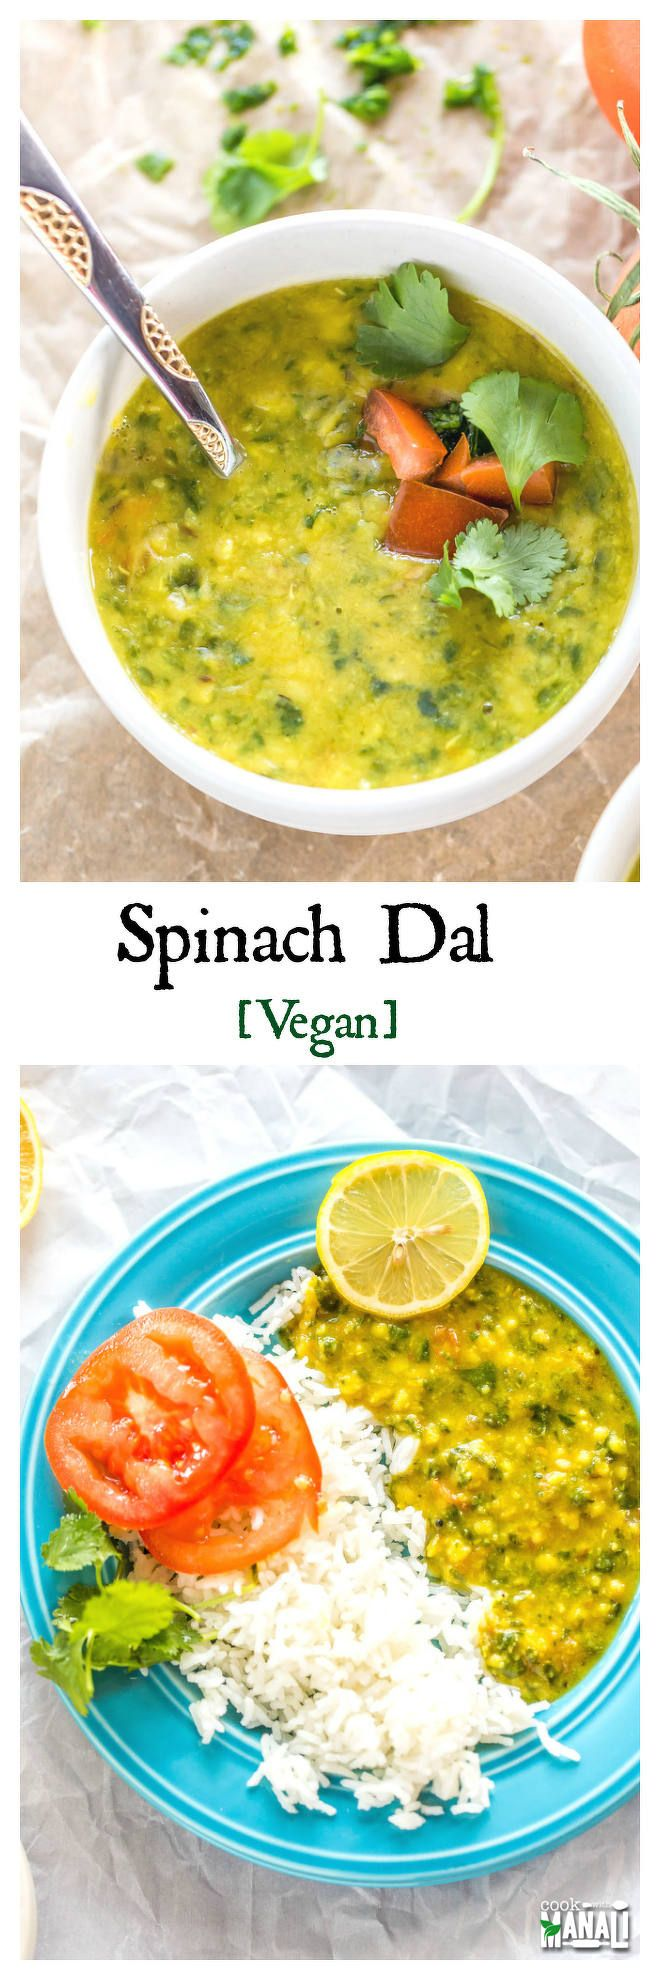 Spinach Dal - Cook With Manali